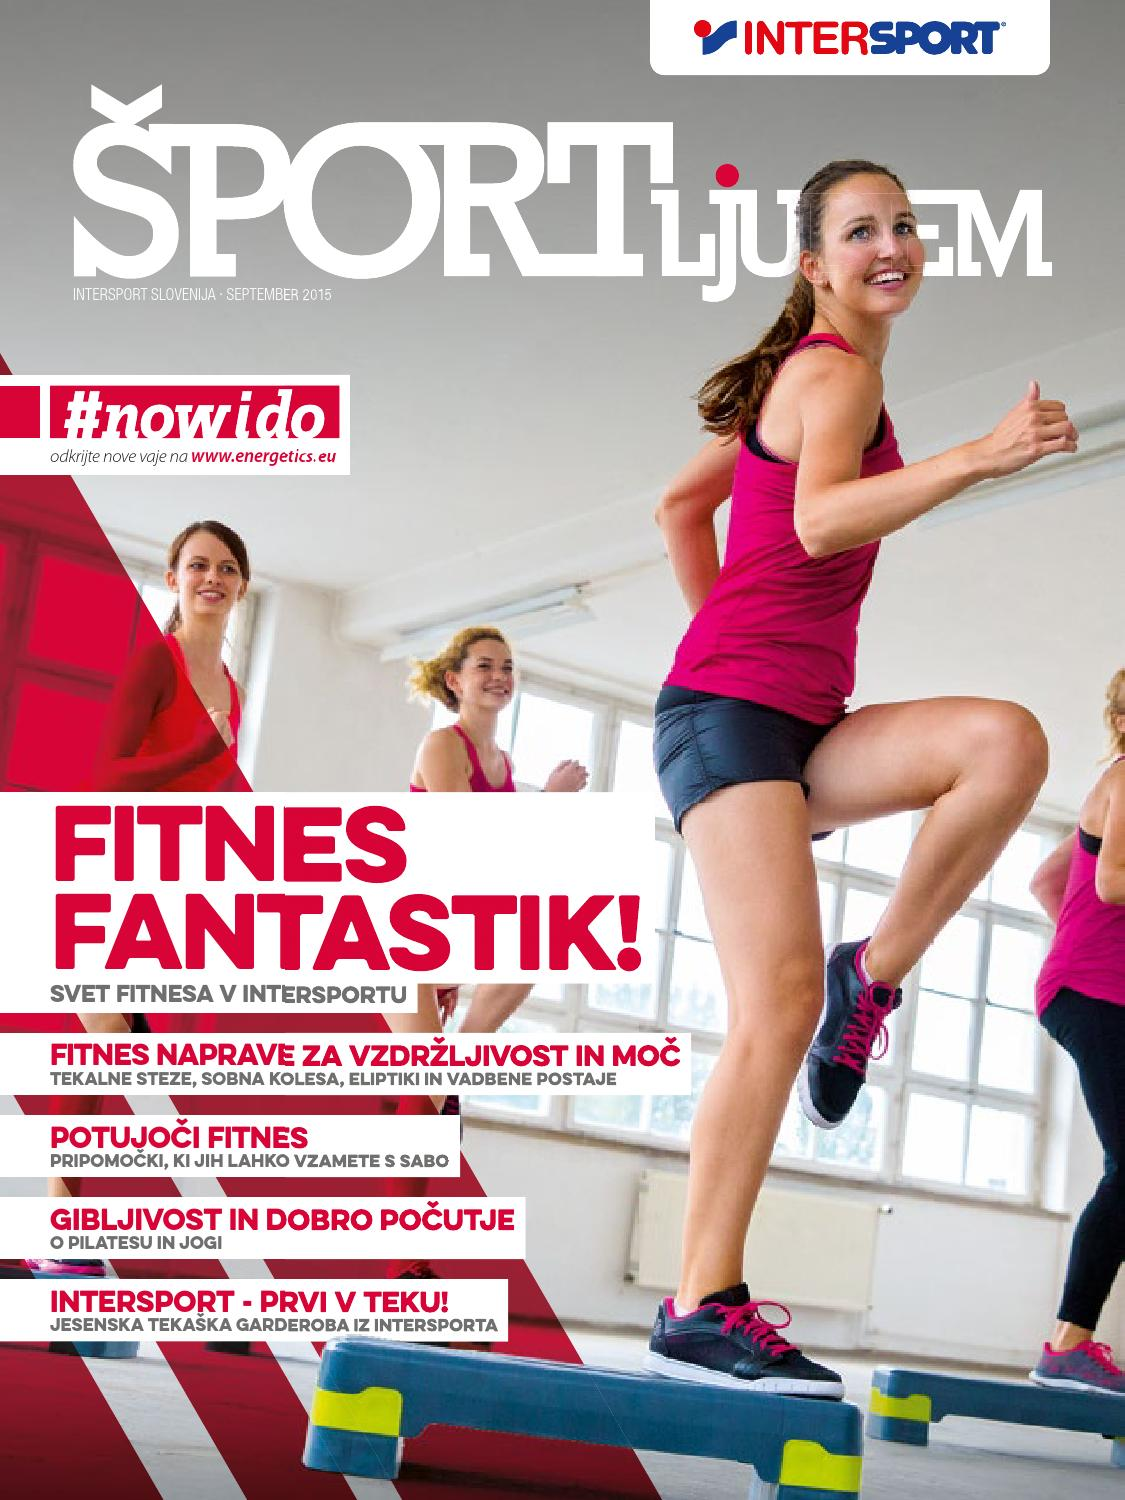 Intersport katalog fitnes fantastik by vsikatalogi si issuu